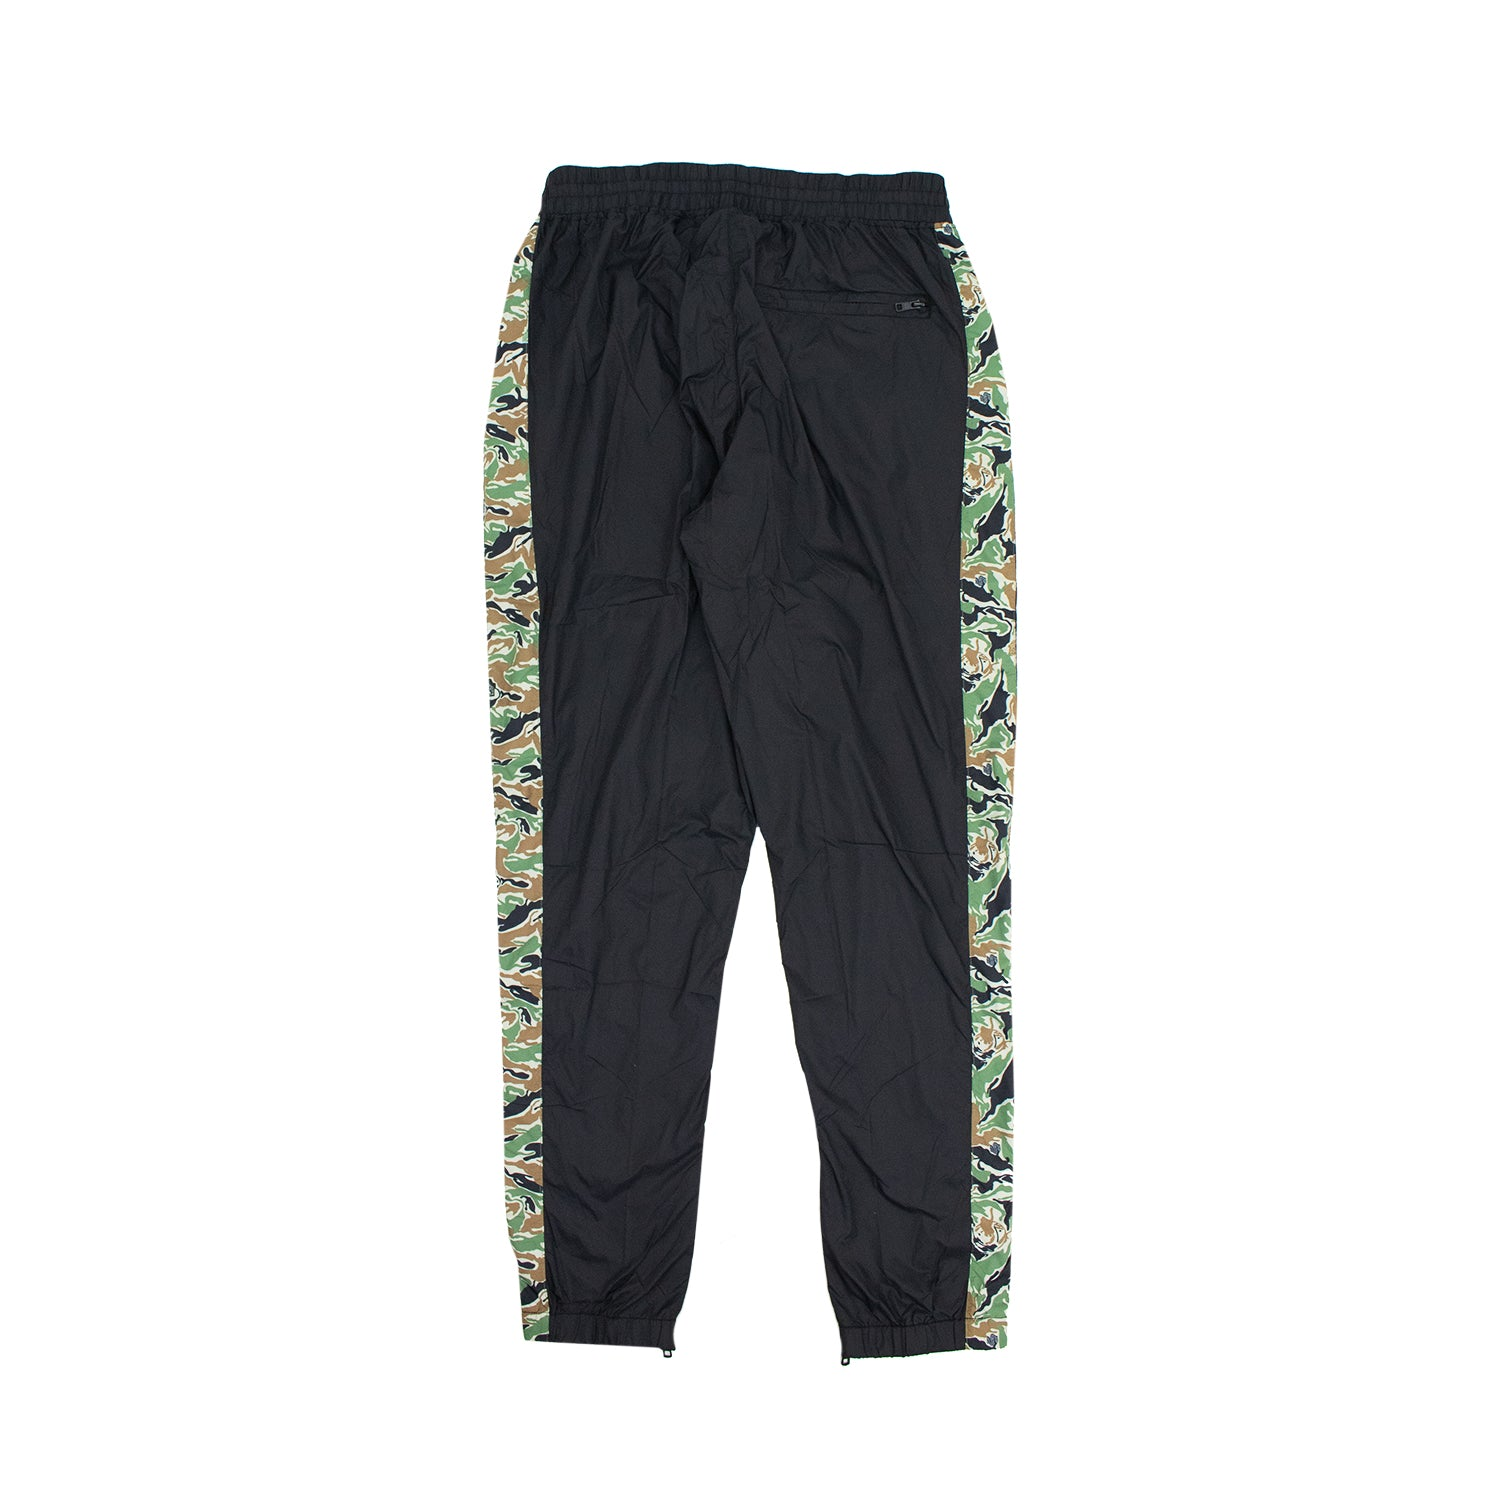 TRAIL MIX PANT